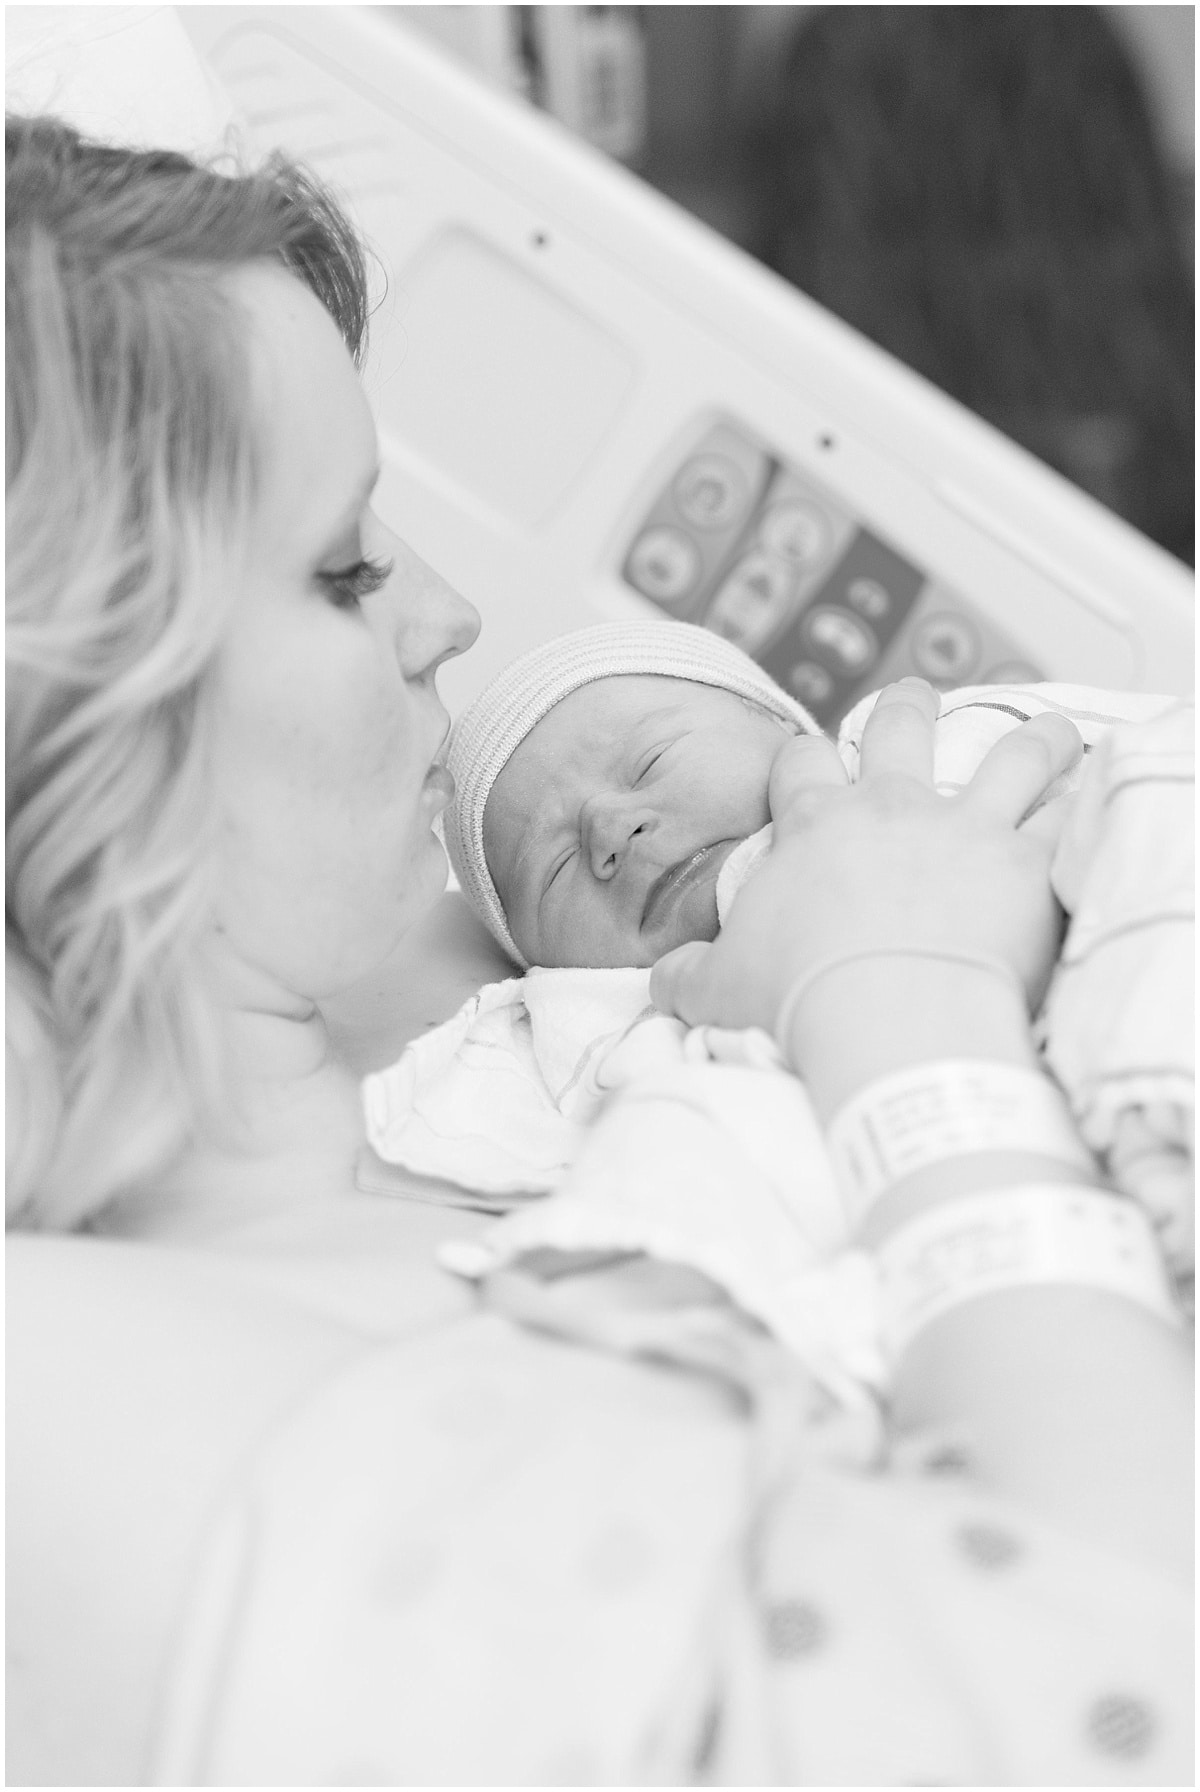 Victoria Rayburn Photography took Lukas Isenbarger's birth photos at IU Health Arnett Hospital in Lafayette, Indiana